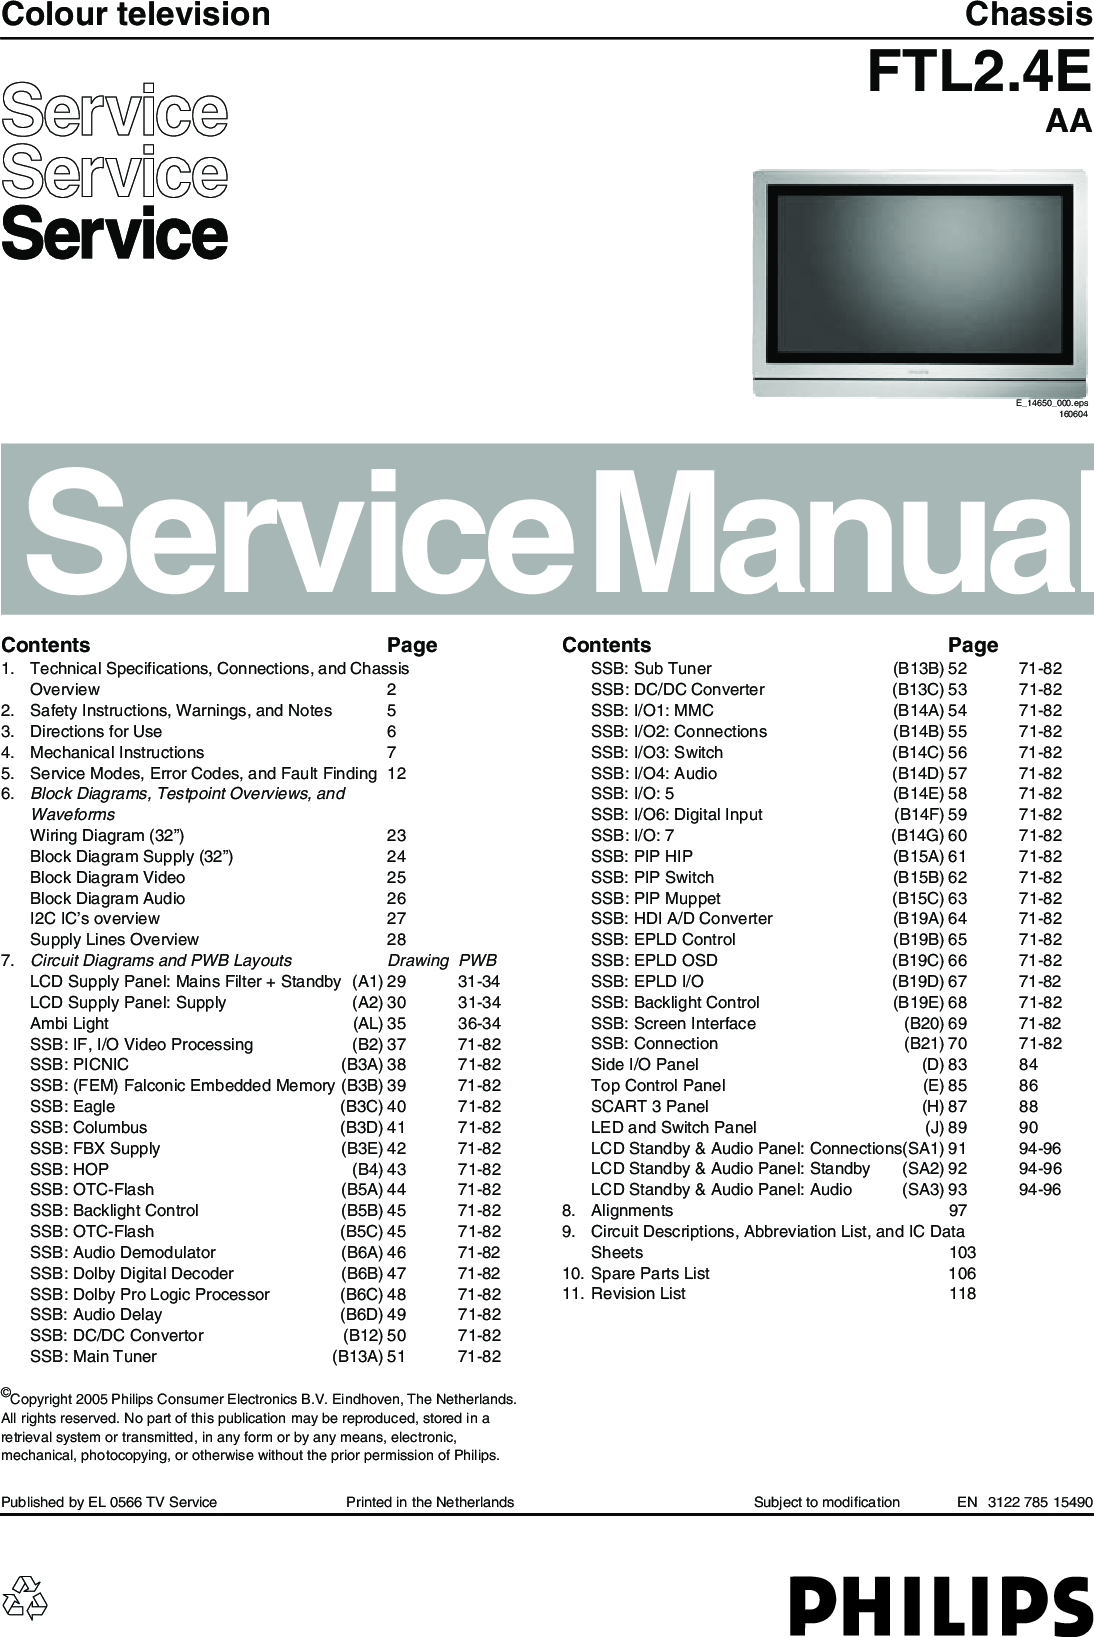 Philips Chassis FTL2 4E AA Service Manual  Www s manuals com